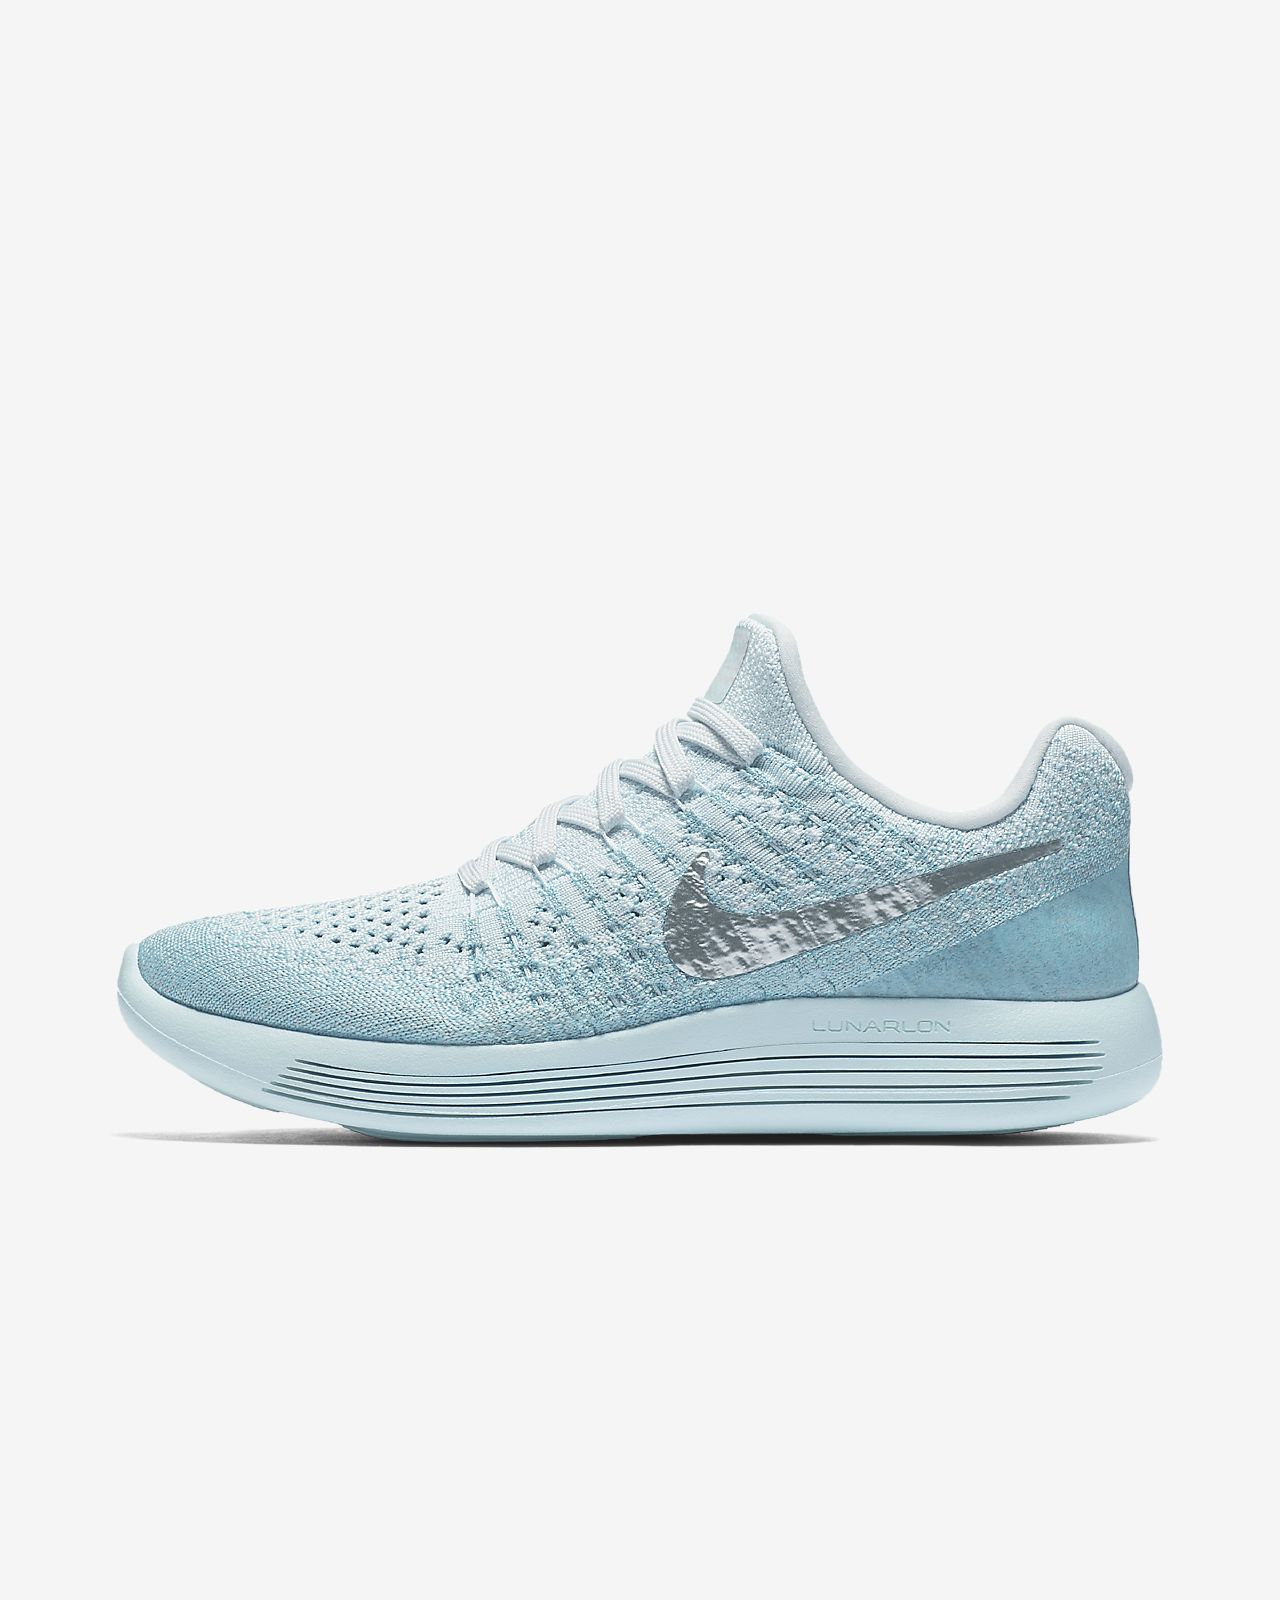 huge selection of 26f56 5d410 spain nike lunarepic low flyknit 2 womens running shoe bcb6a 12d84